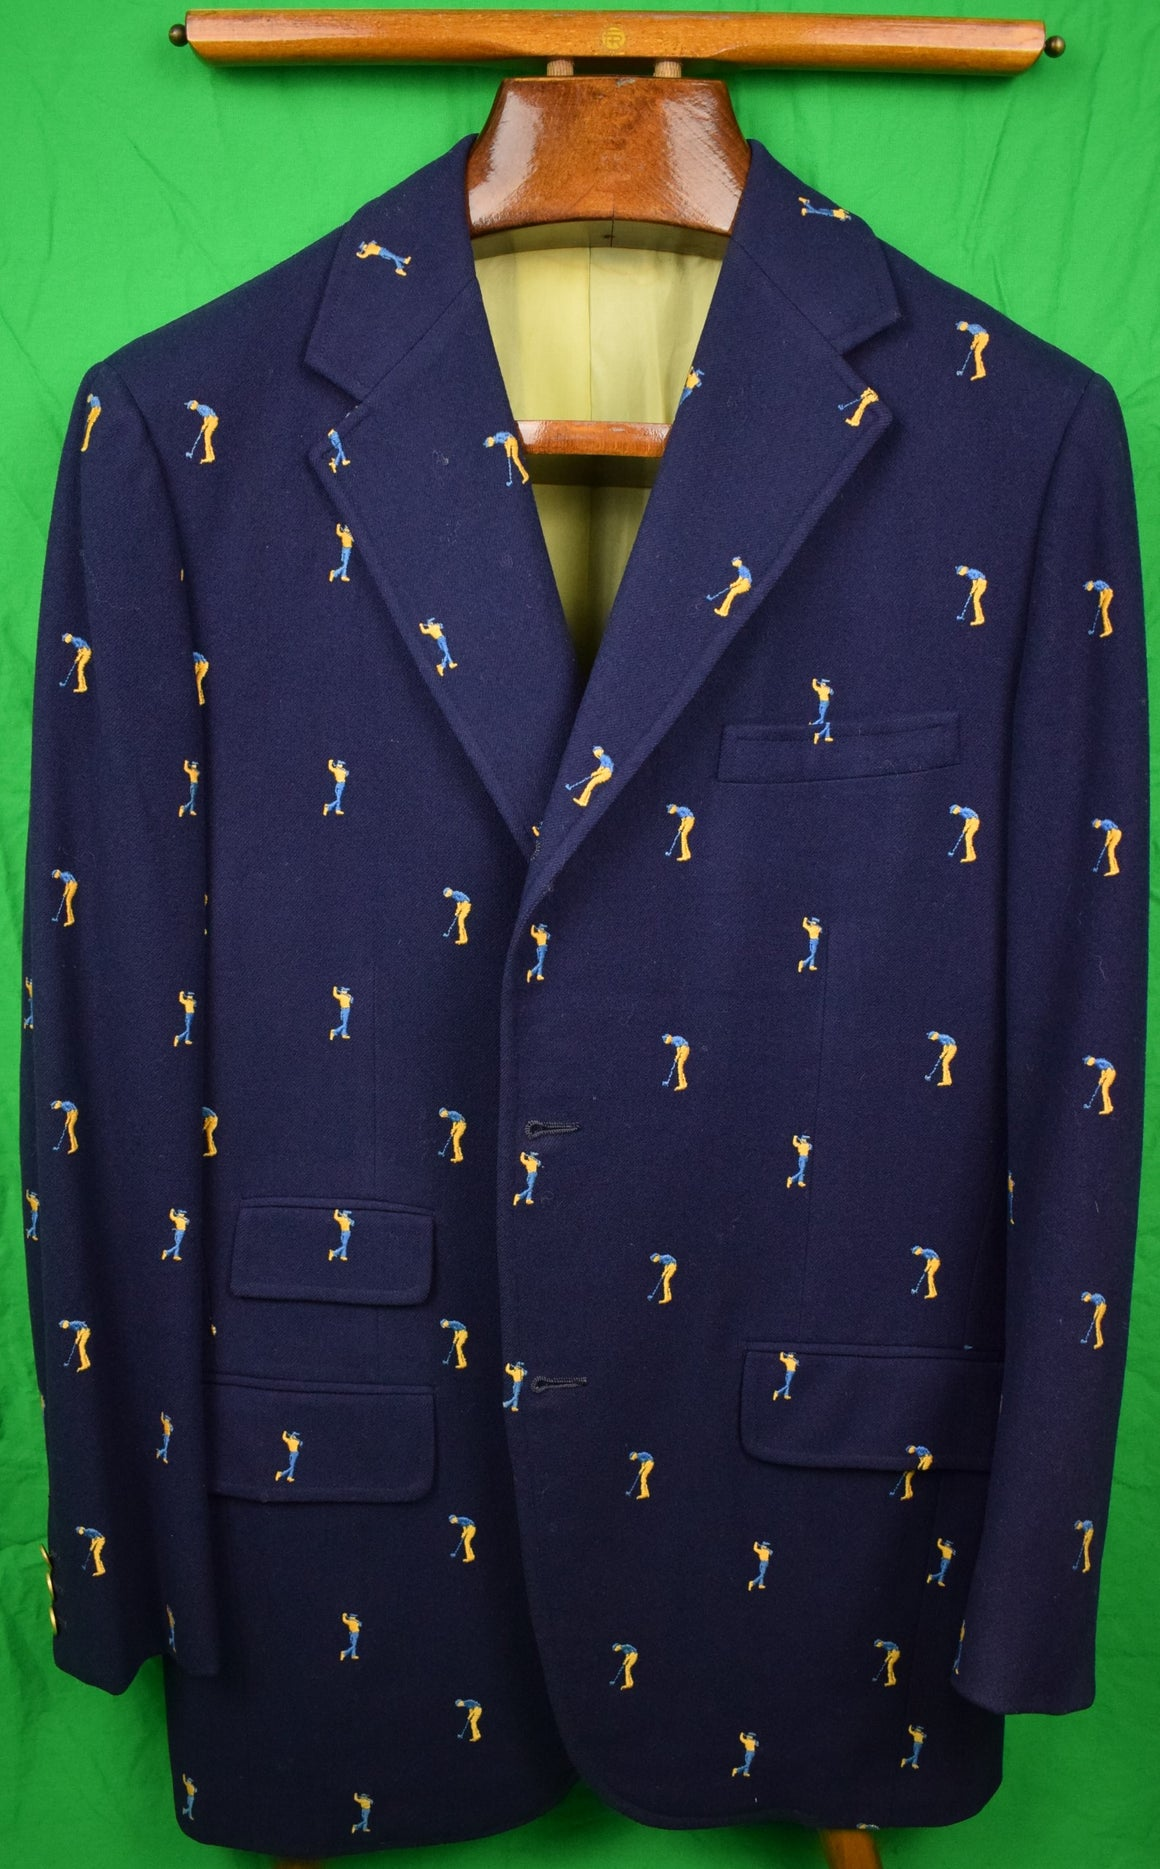 Chipp Navy Flannel Embroidered Golfer c1972 Blazer (Sold!)